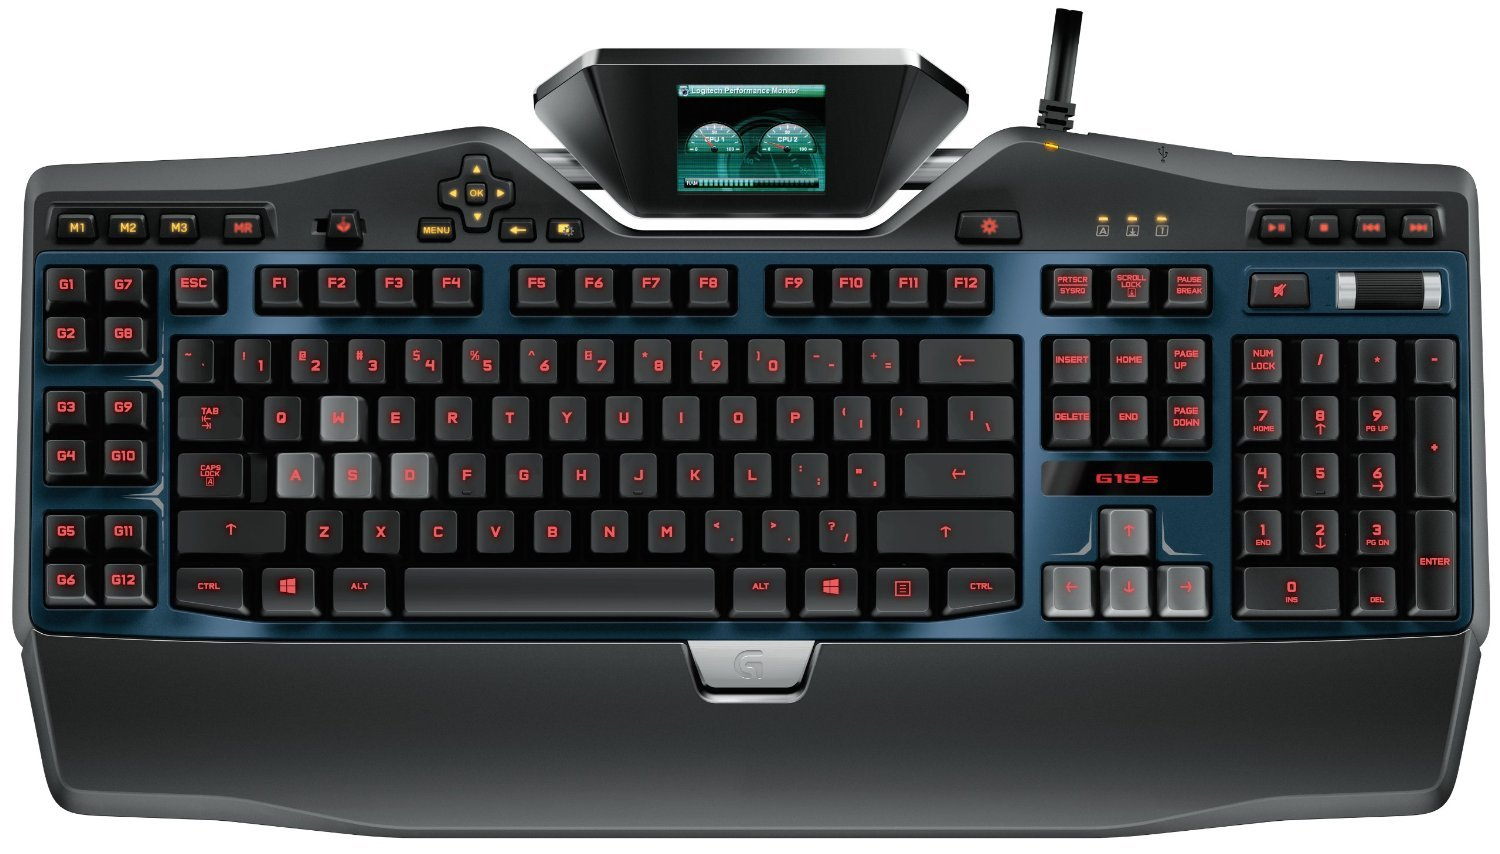 Logitech G19s Gaming Keyboard with Color Game Panel Screen